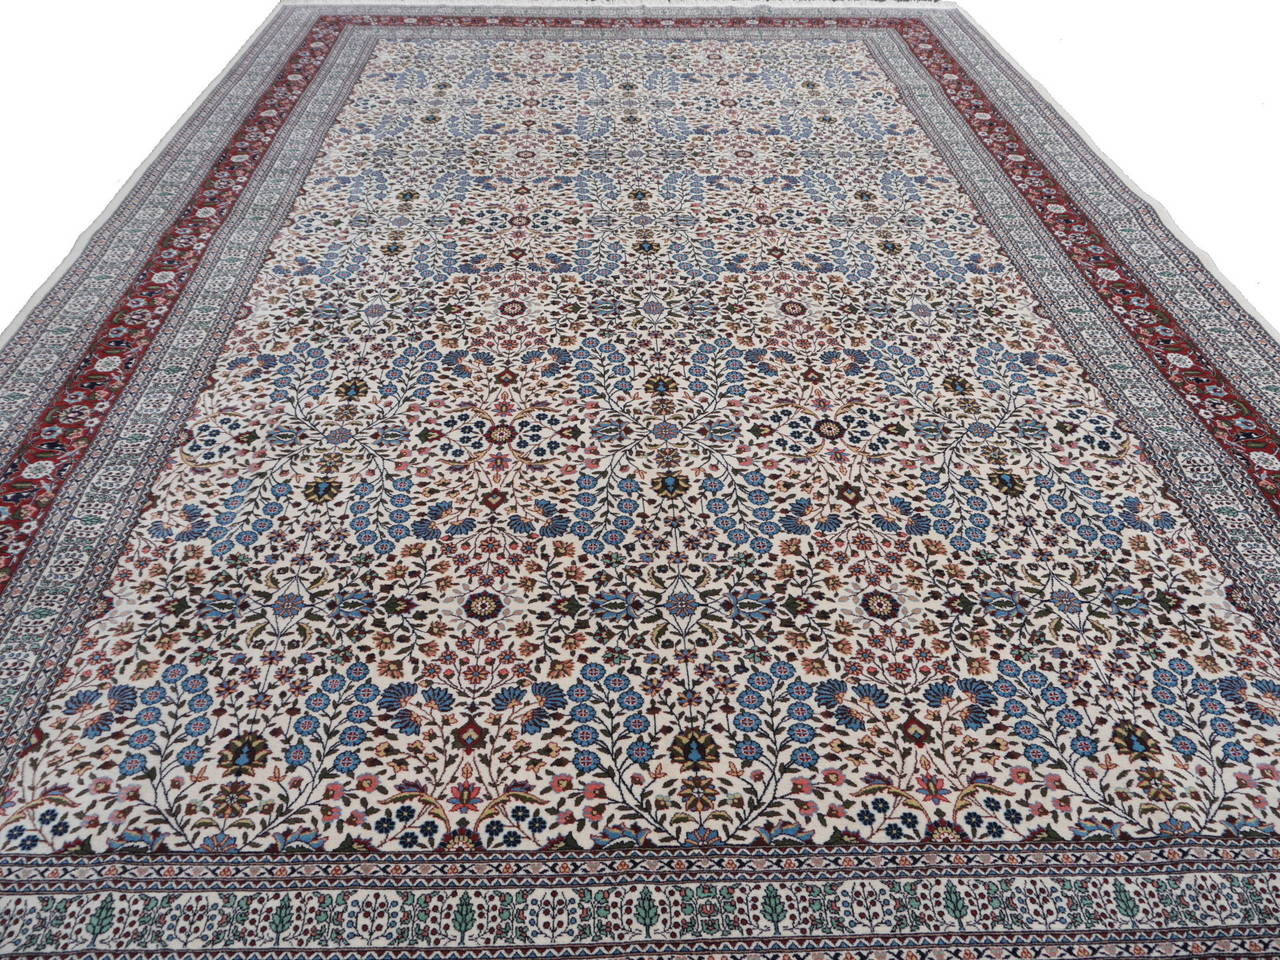 Fine Vintage Turkish Hereke Carpet In Excellent Condition For Sale In Lohr, Bavaria, DE